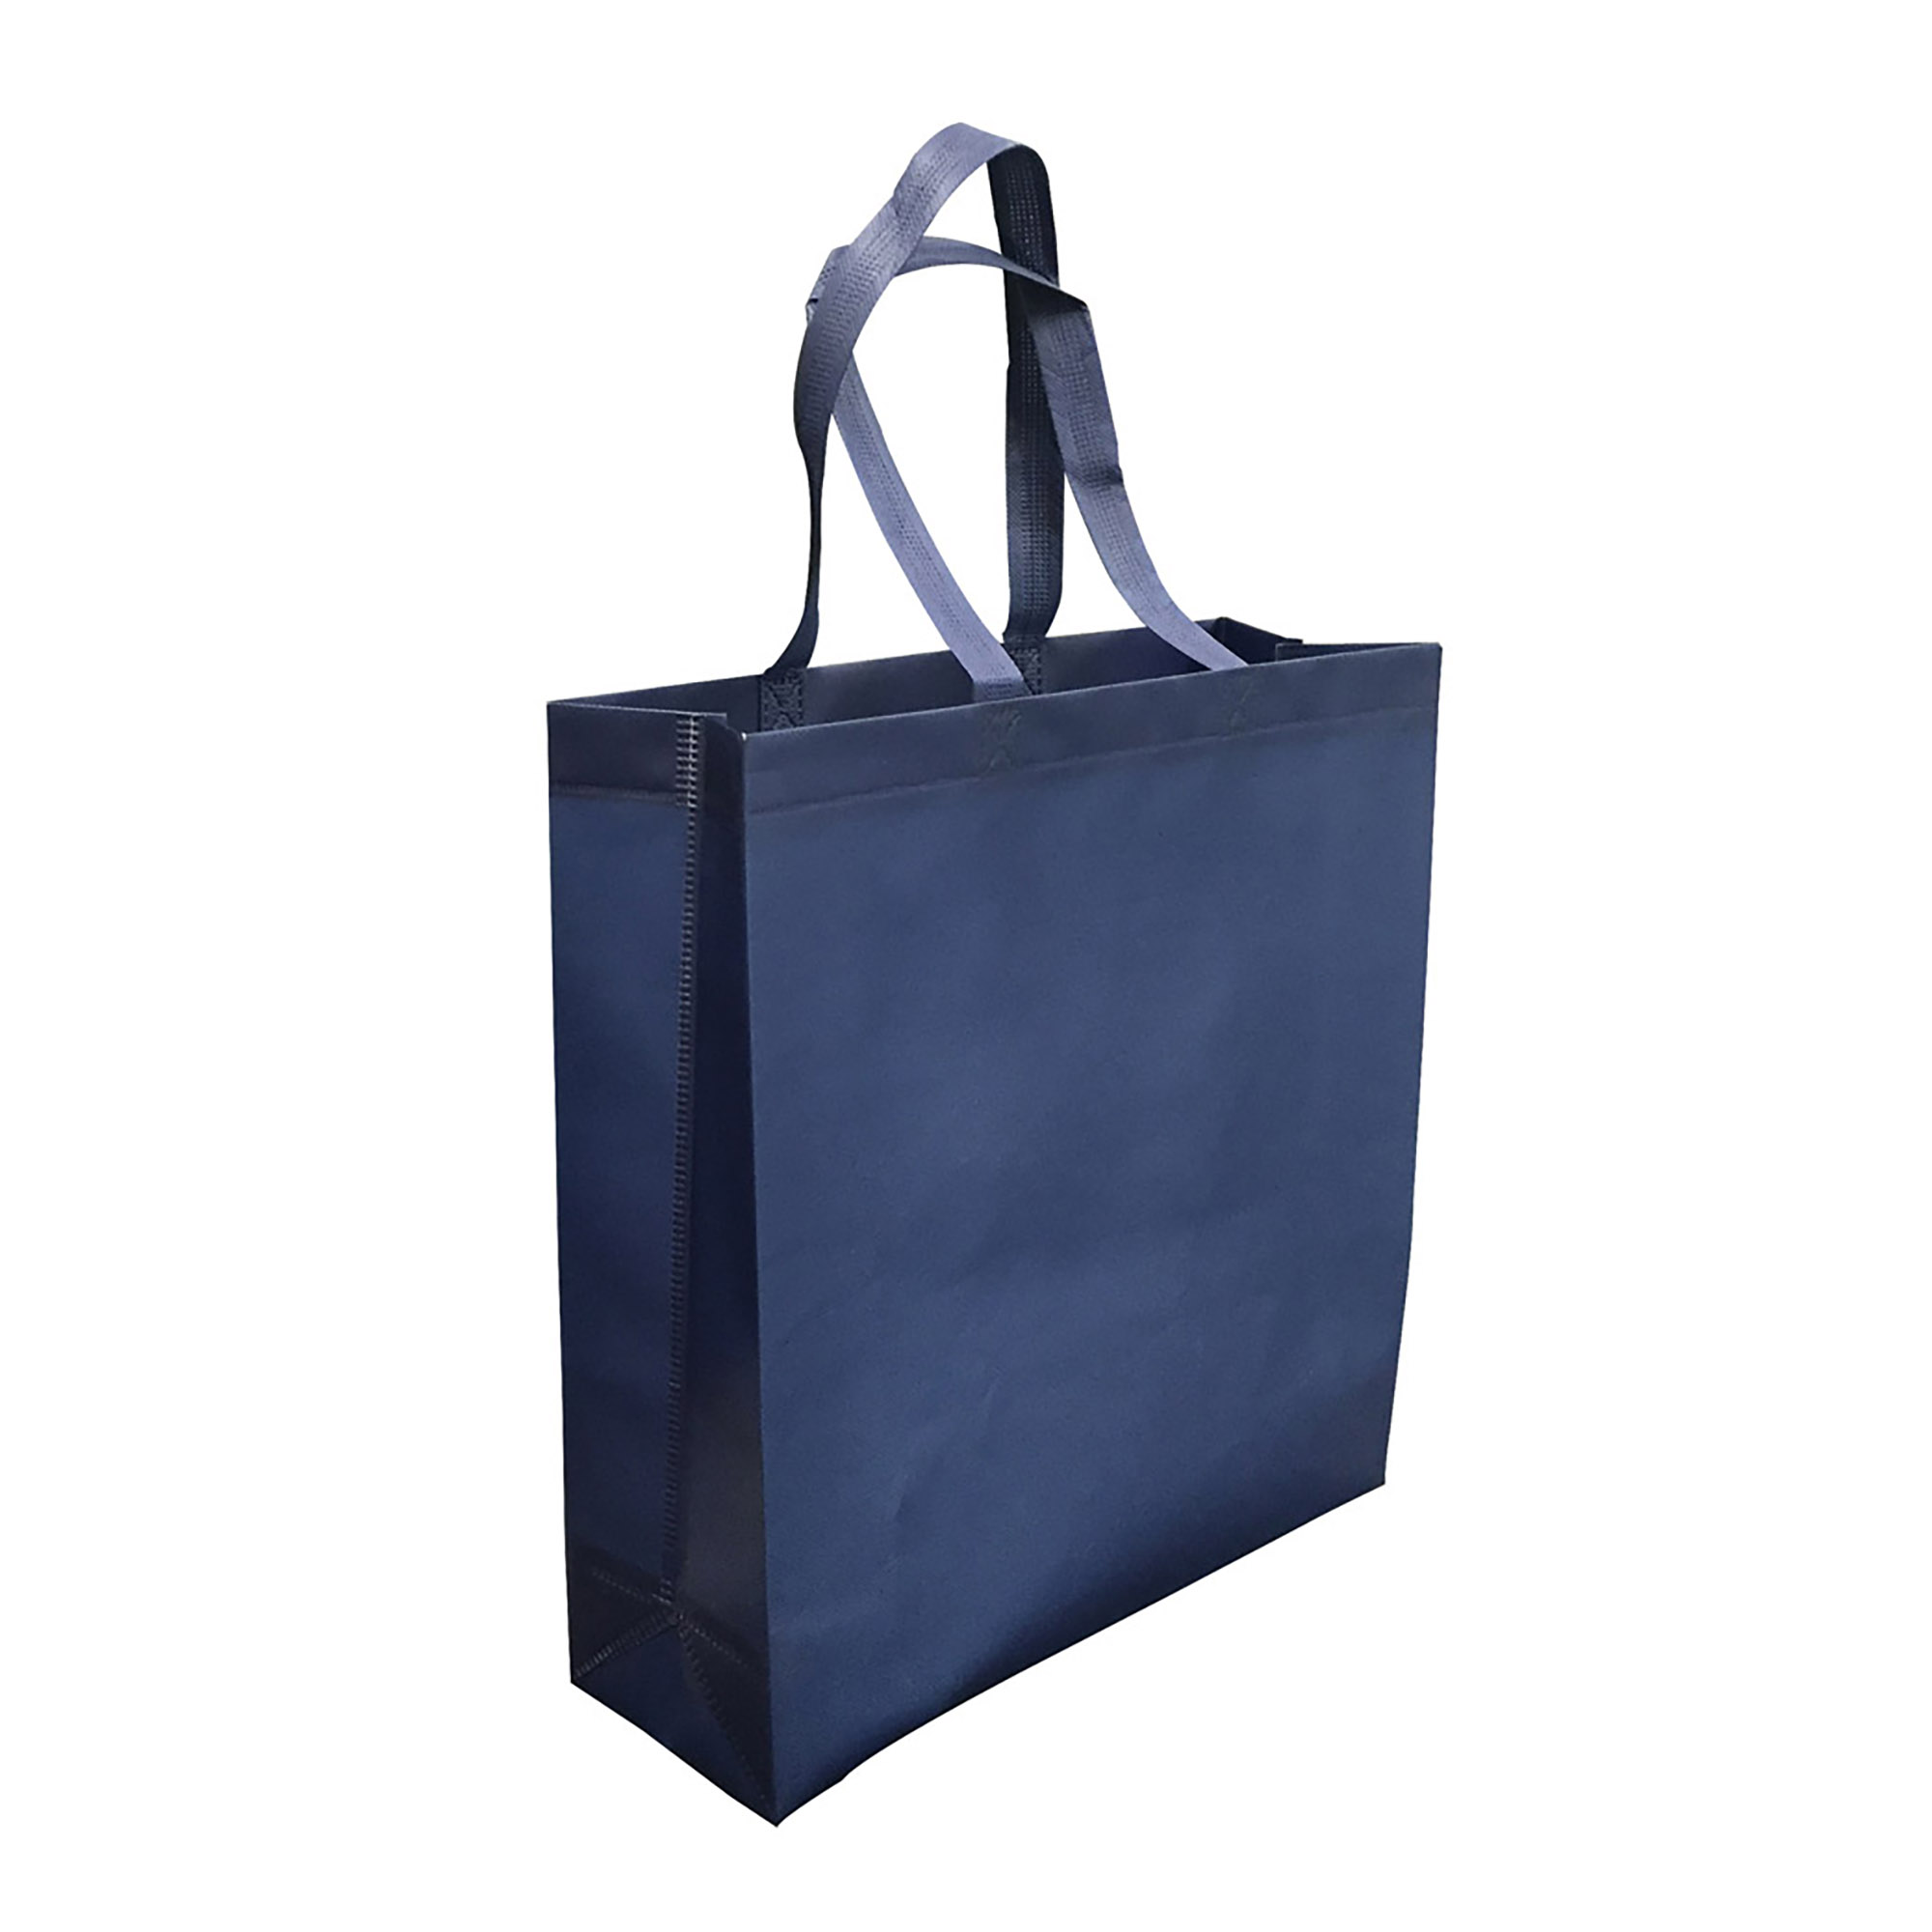 LAMINATED NON WOVEN BAG WITH LARGE GUSSET - 1 Colour Print, From $1.36